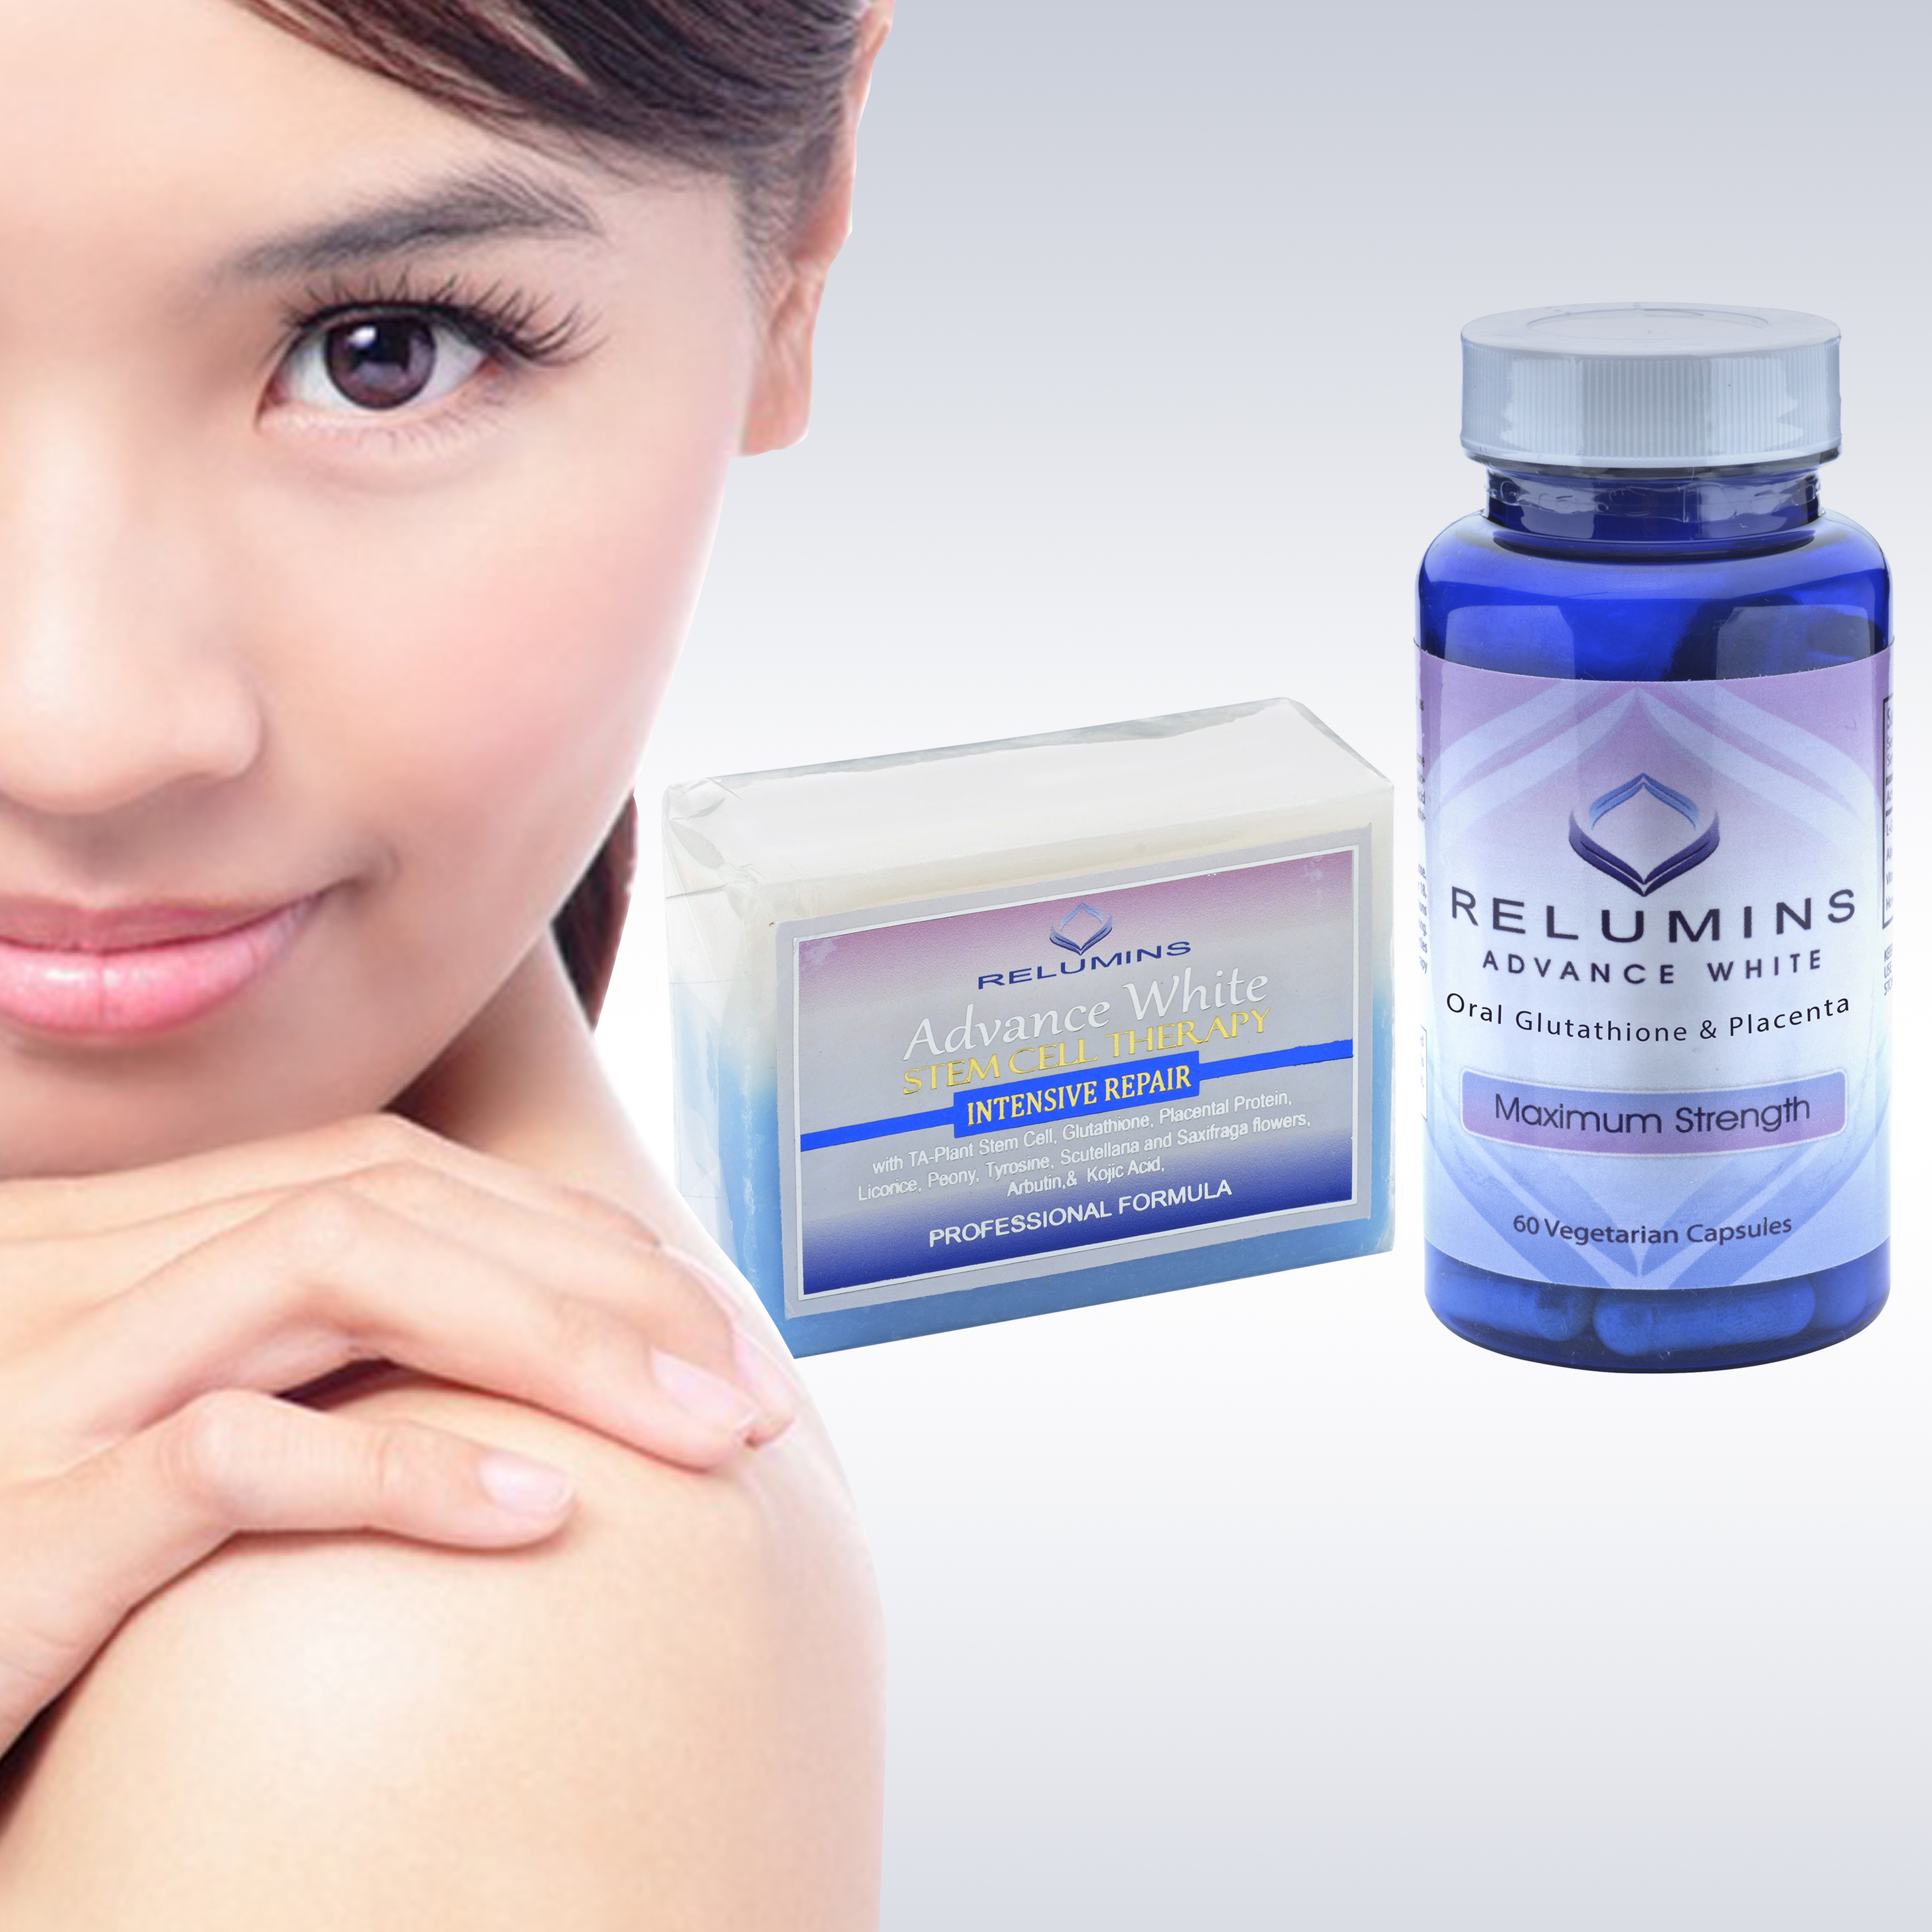 Relumins Whitening Set Advance White Oral Glutathione